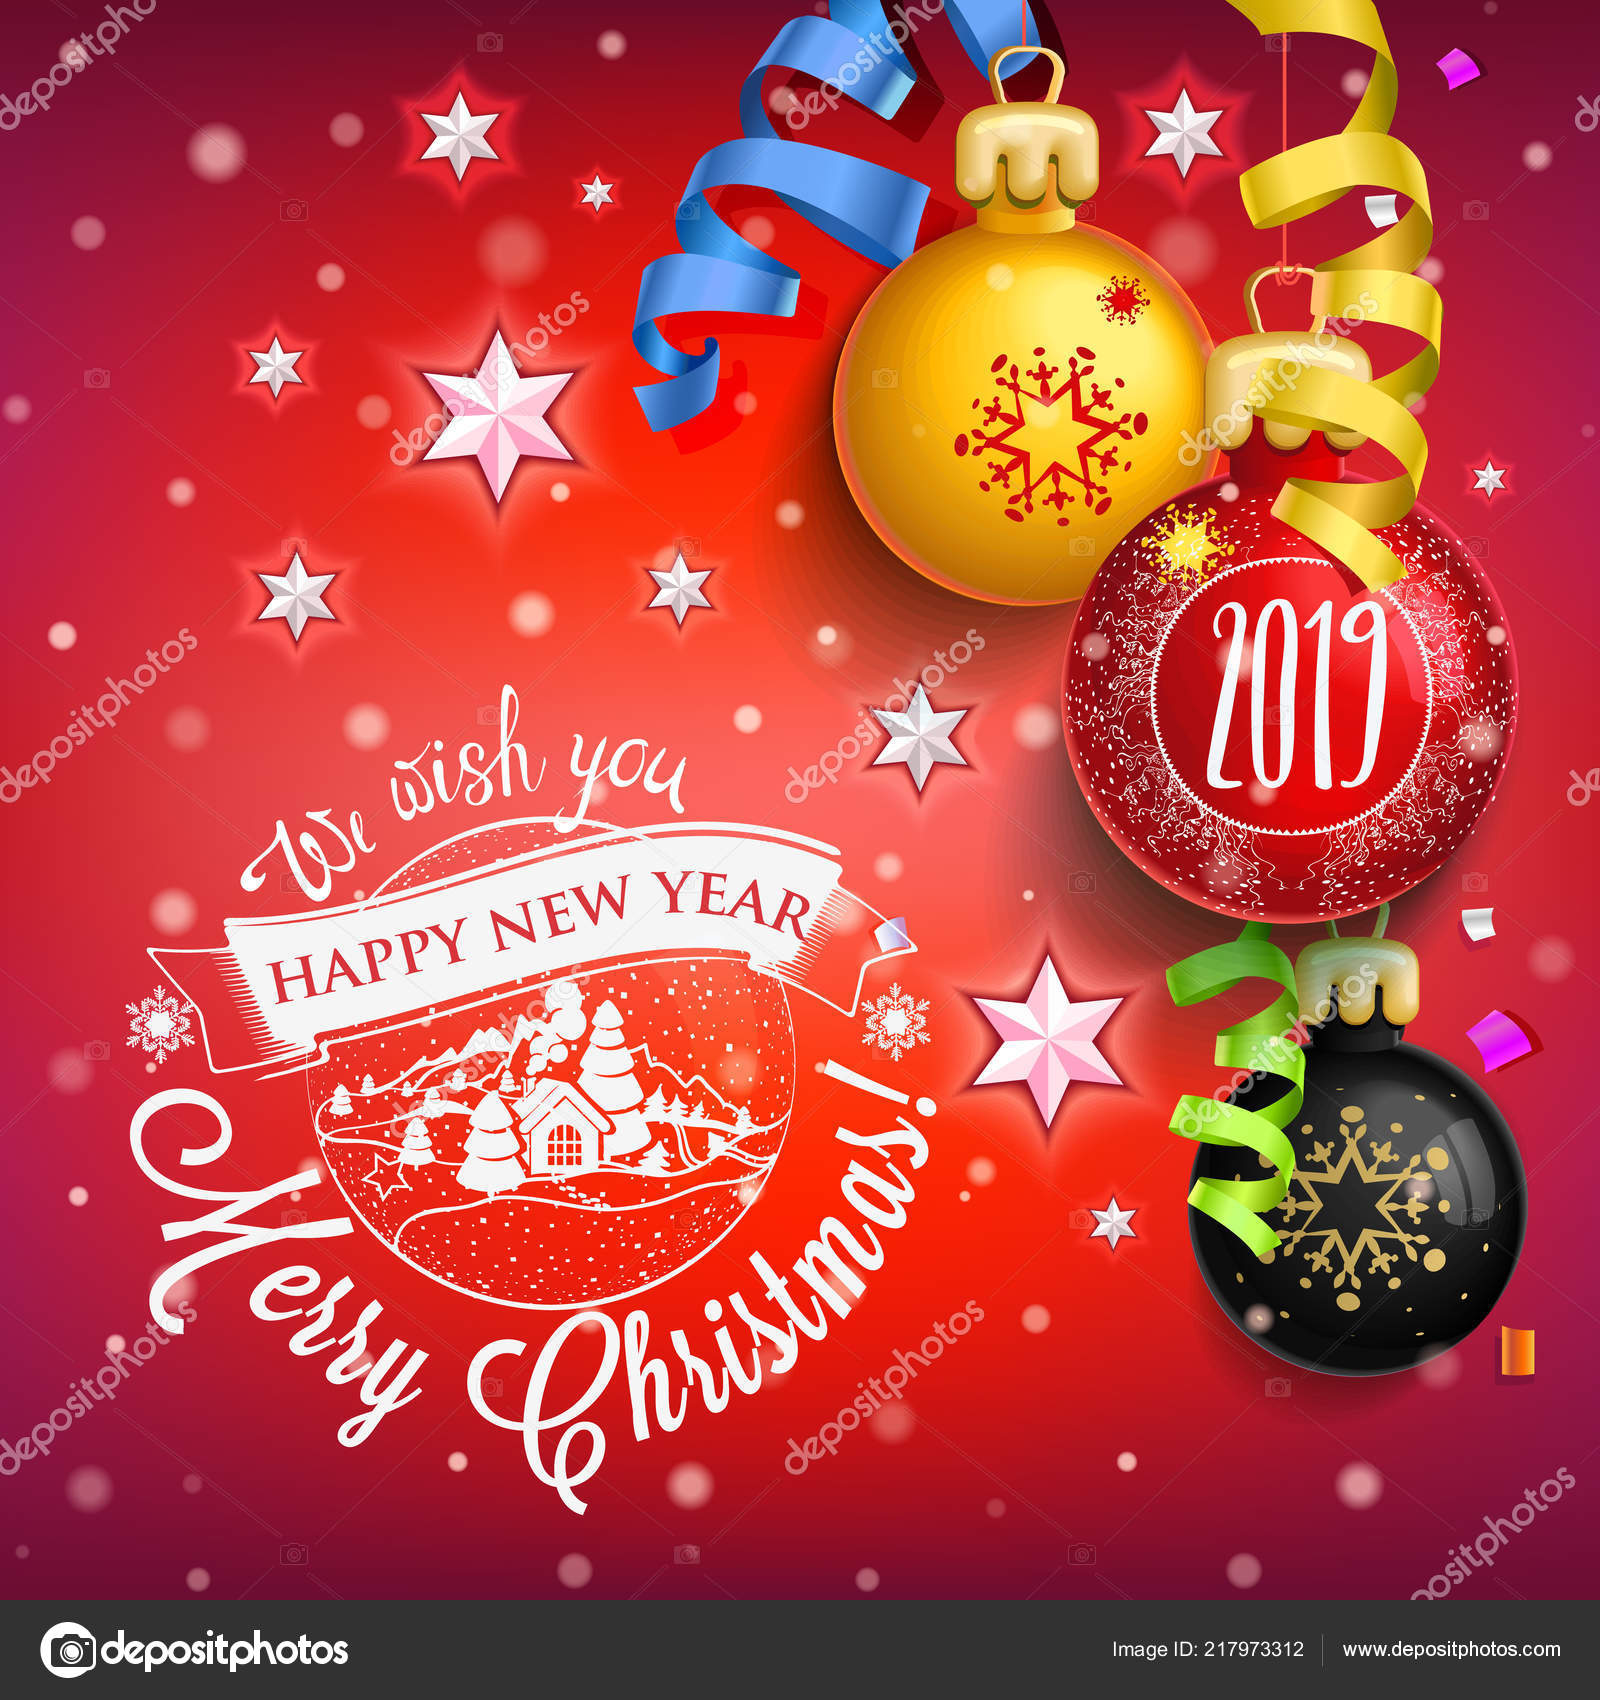 Christmas Images 2019 Download.Images Merry Christmas 2019 2019 New Year Merry Christmas